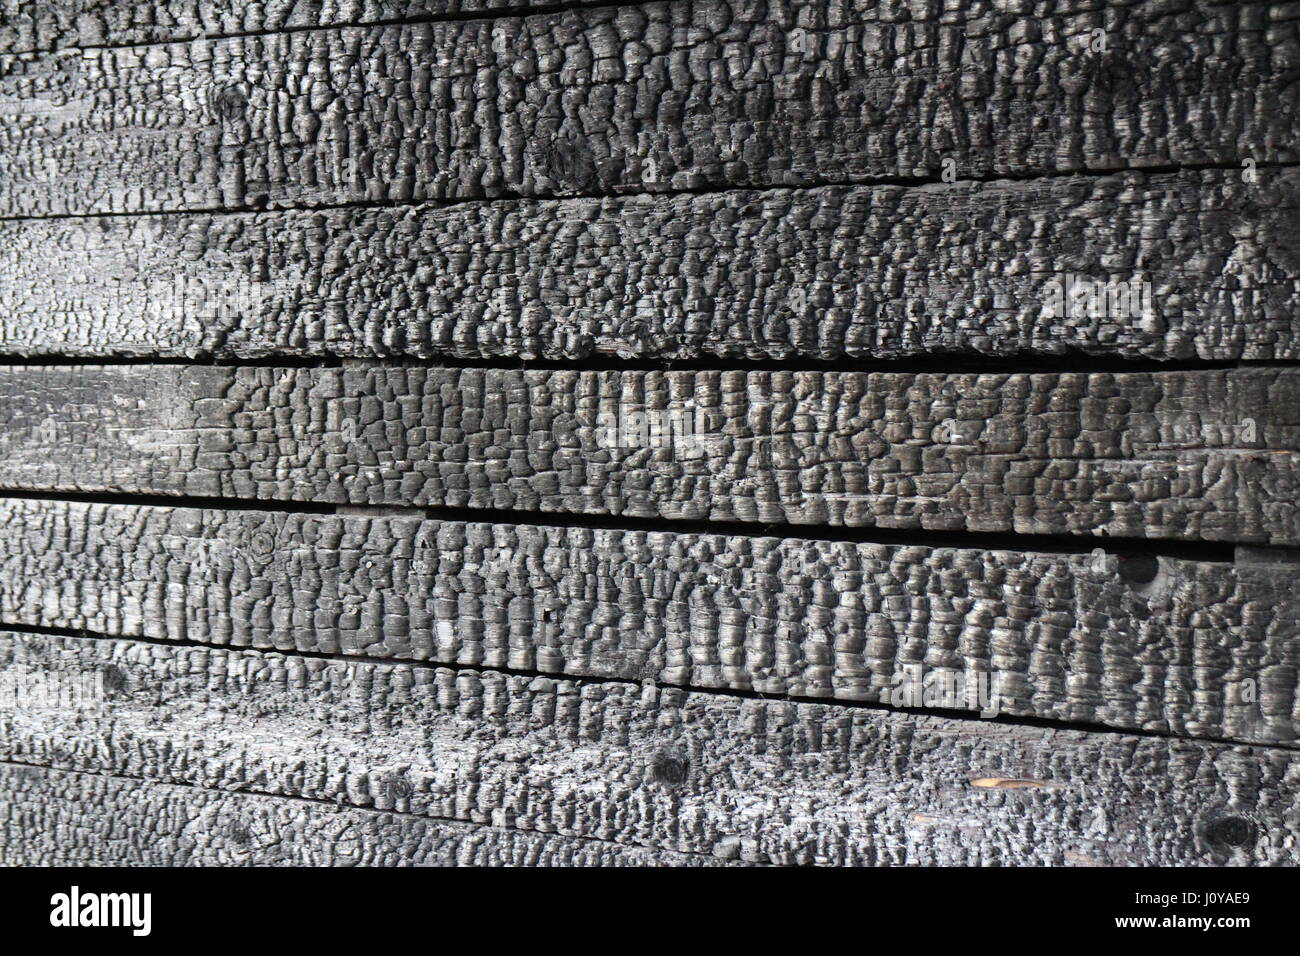 Charred wooden wall after  fire arson, Abstract black background - Stock Image